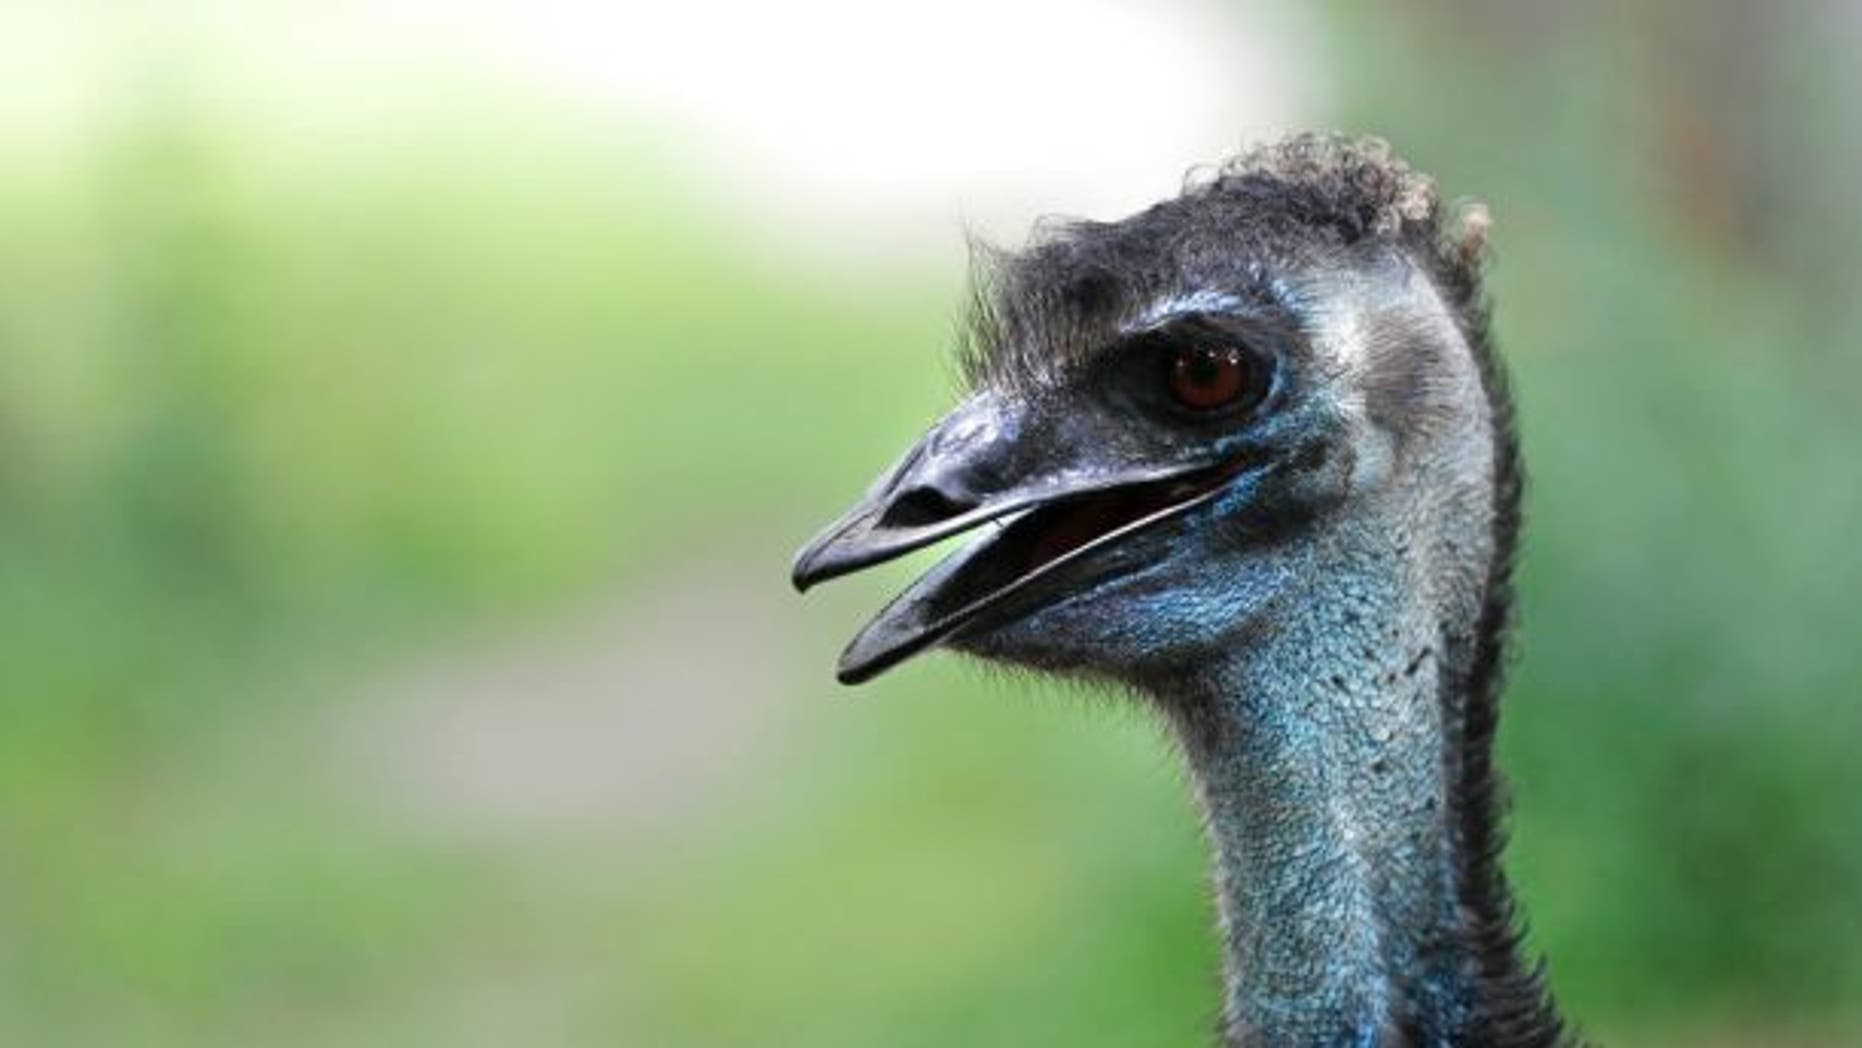 An unidentified driver was seen plowing into emus in a video recently posted to Facebook.